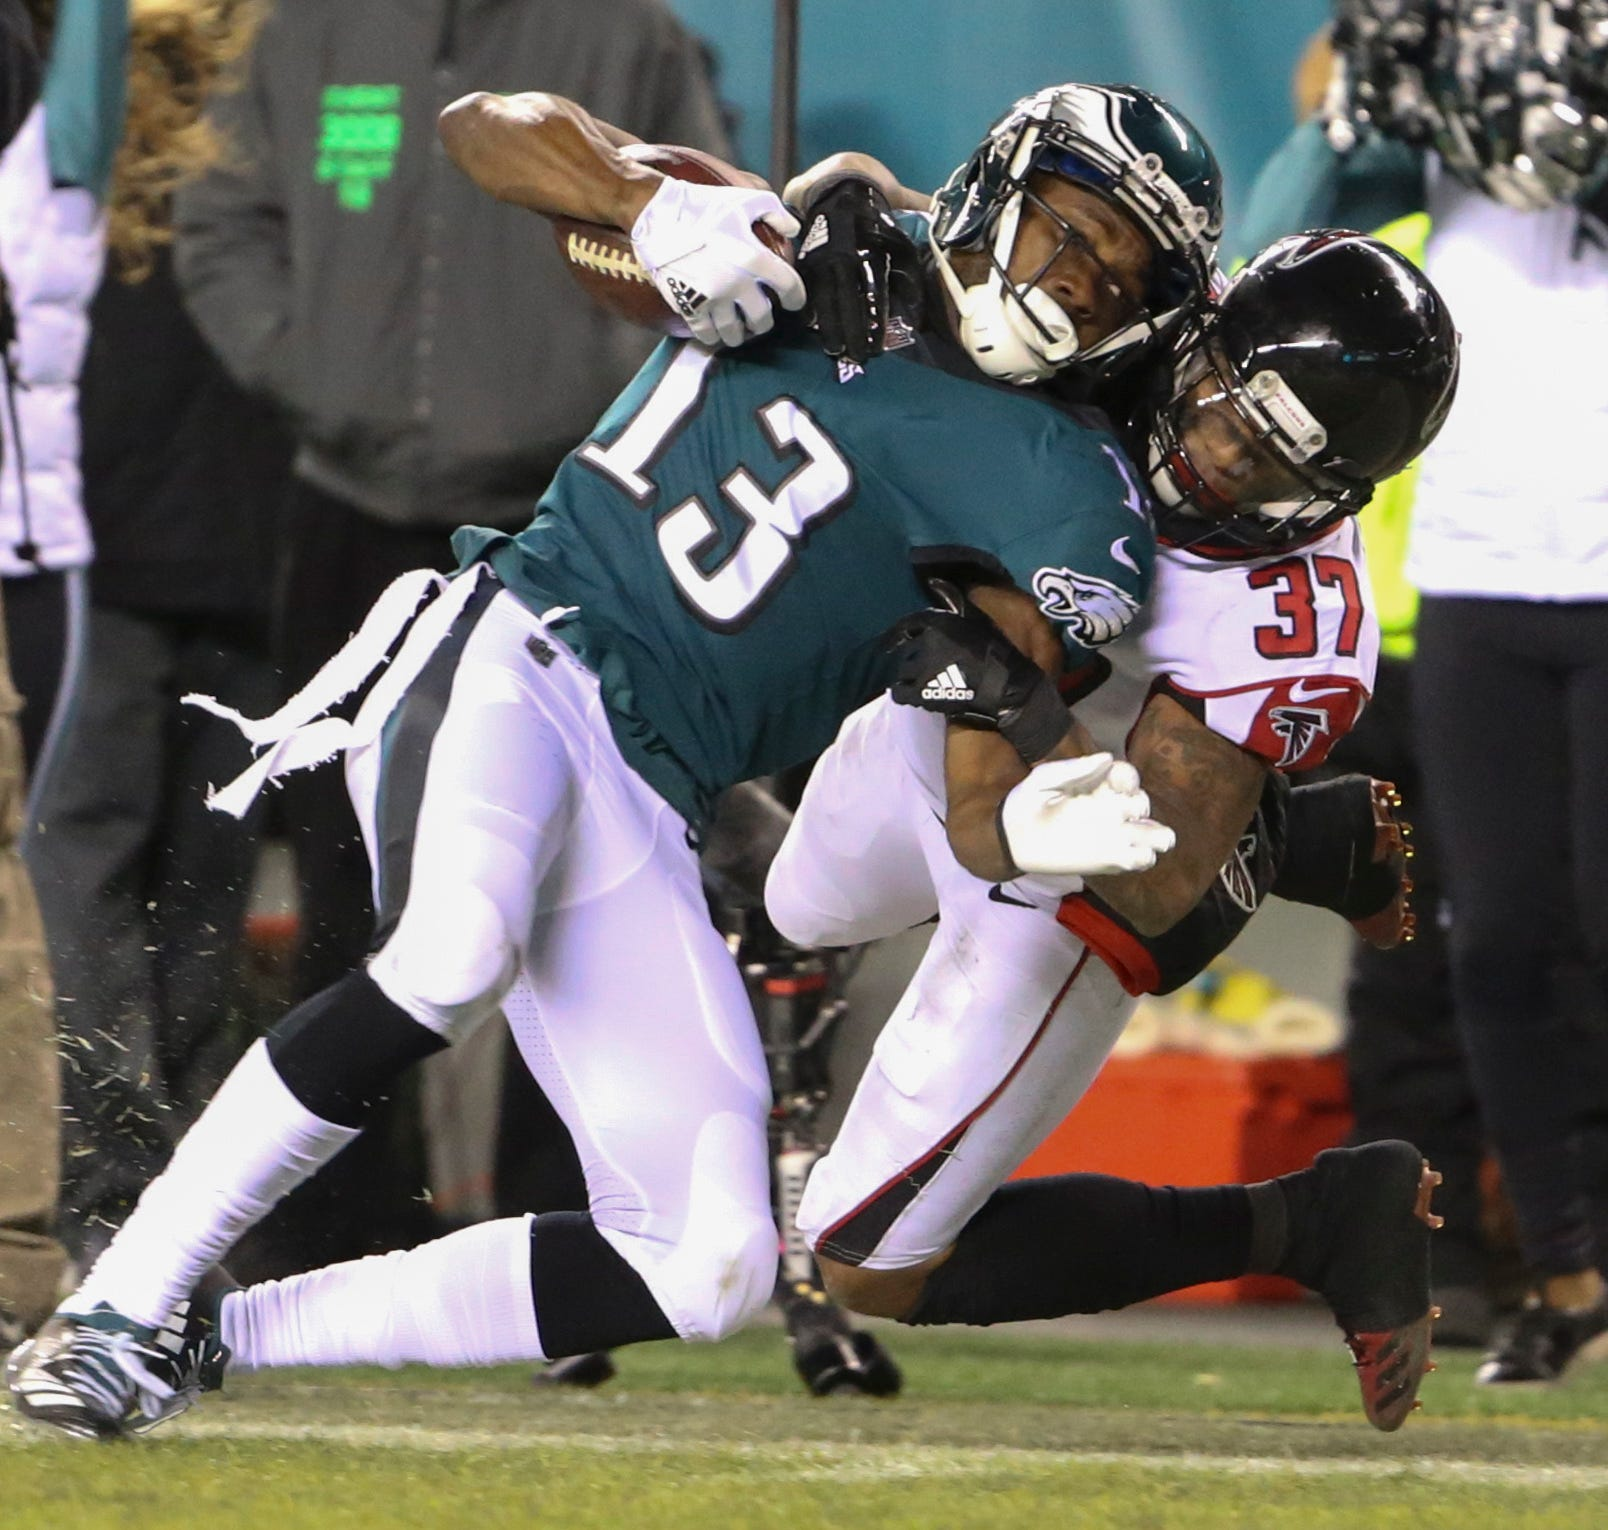 Eagles' Agholor, from country Trump disparaged, keeps working hard